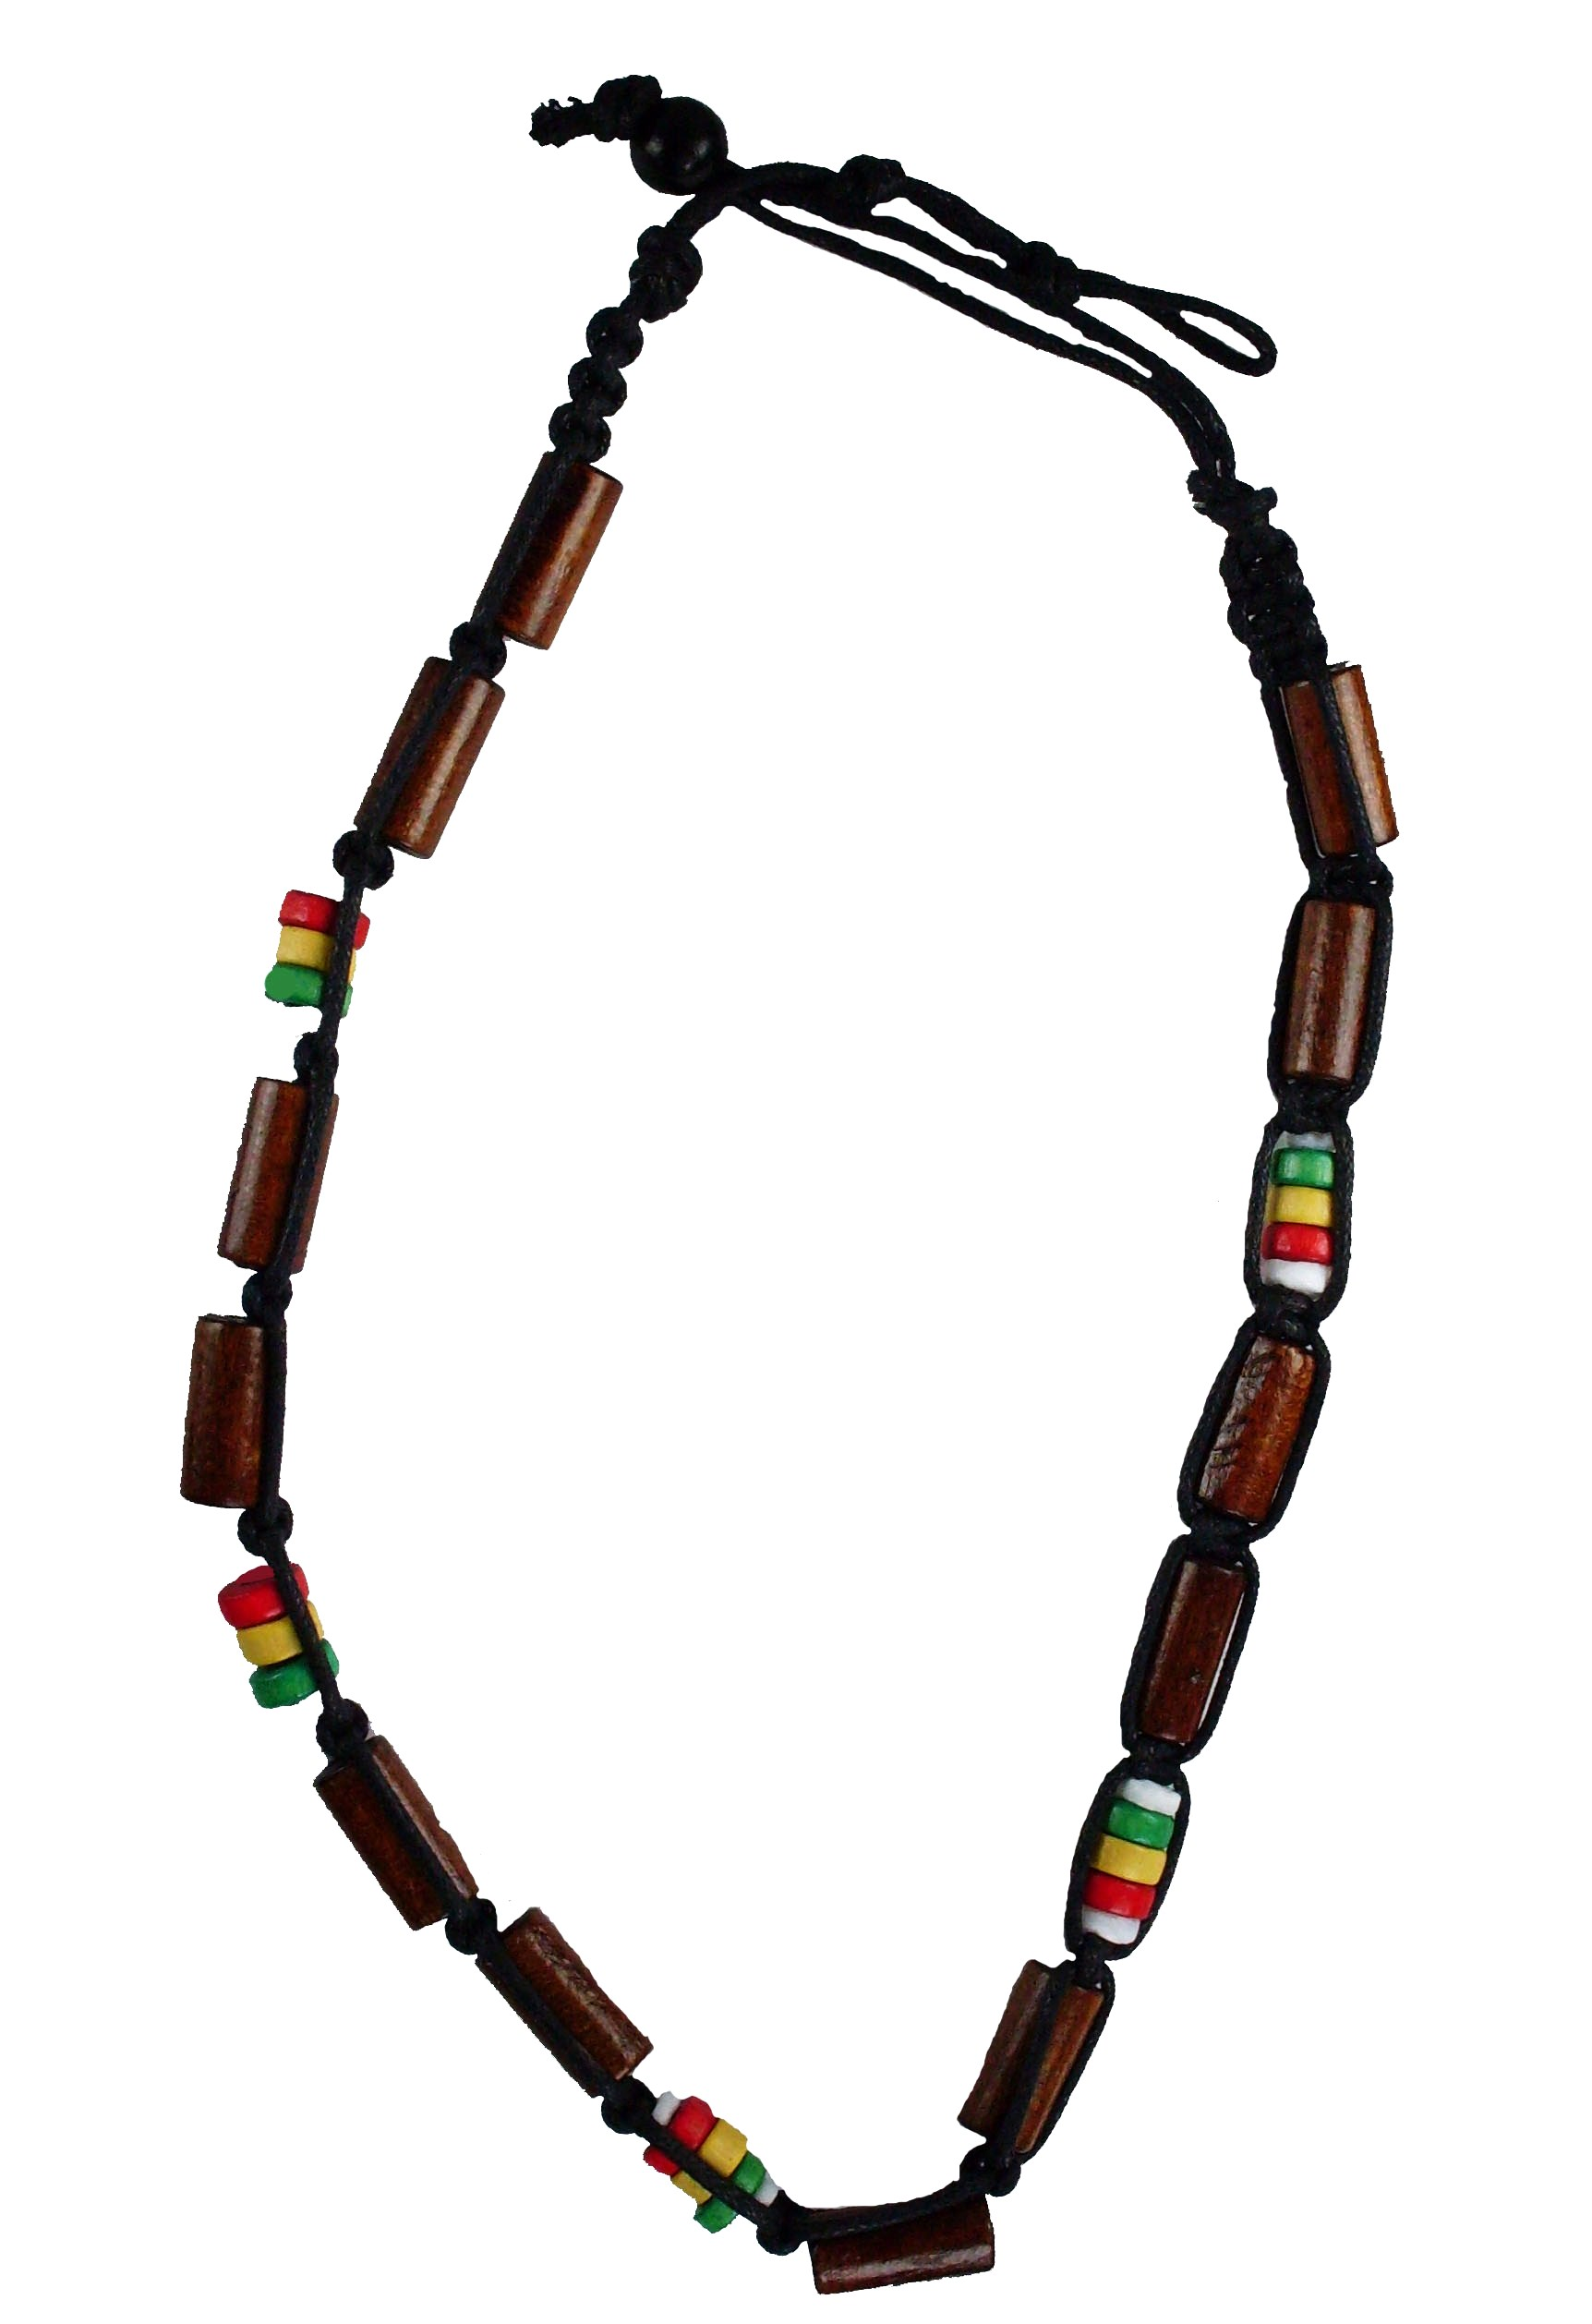 Rasta Necklace #2